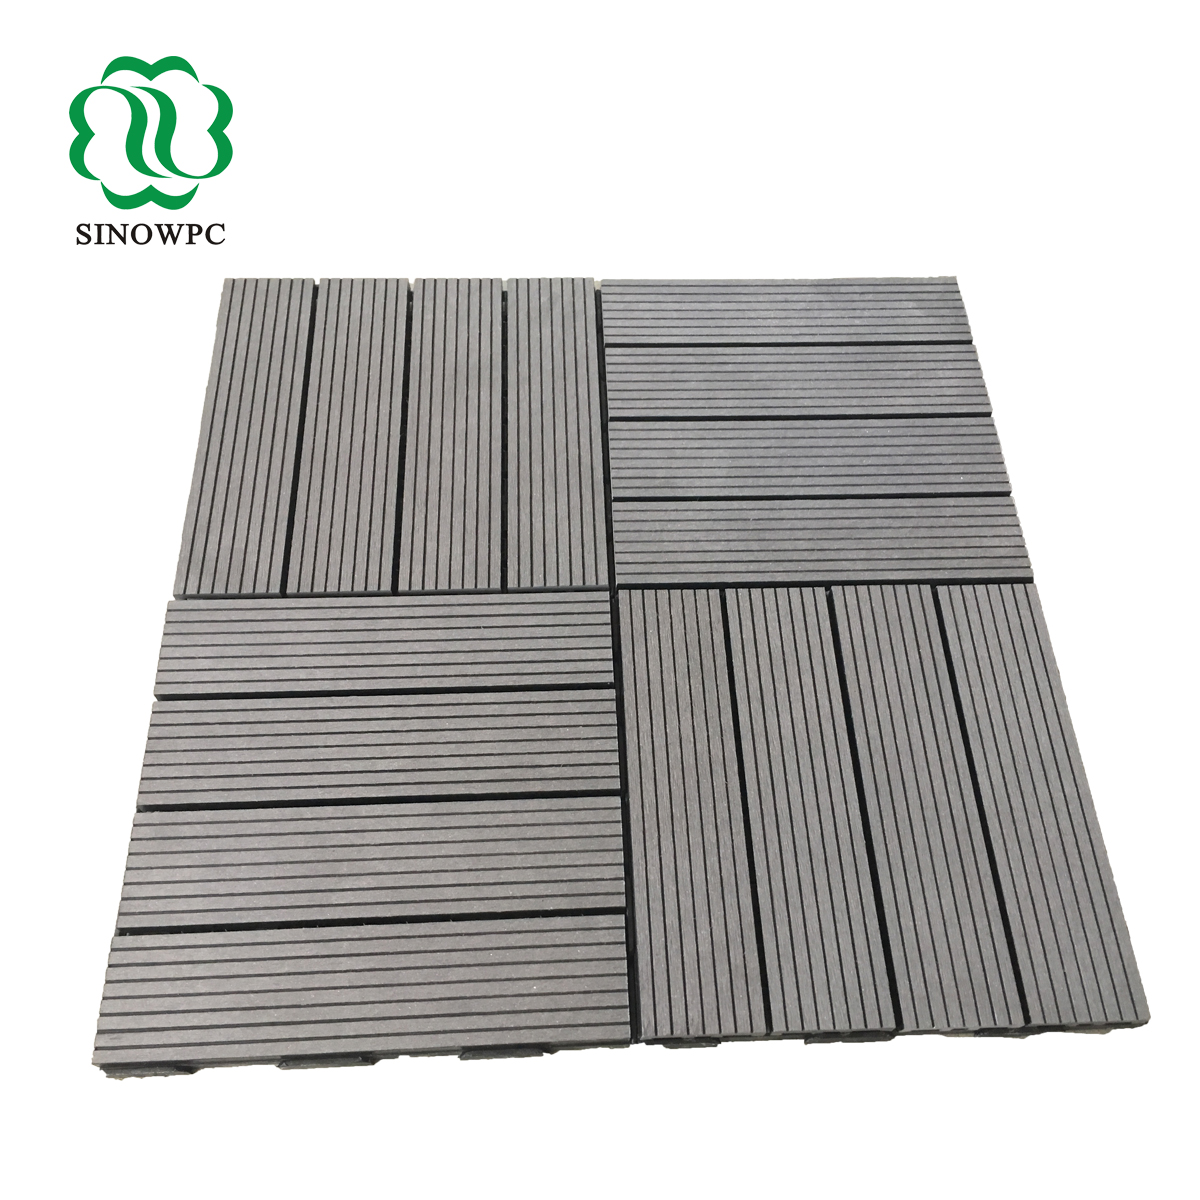 Wood Composite Decking Tiles